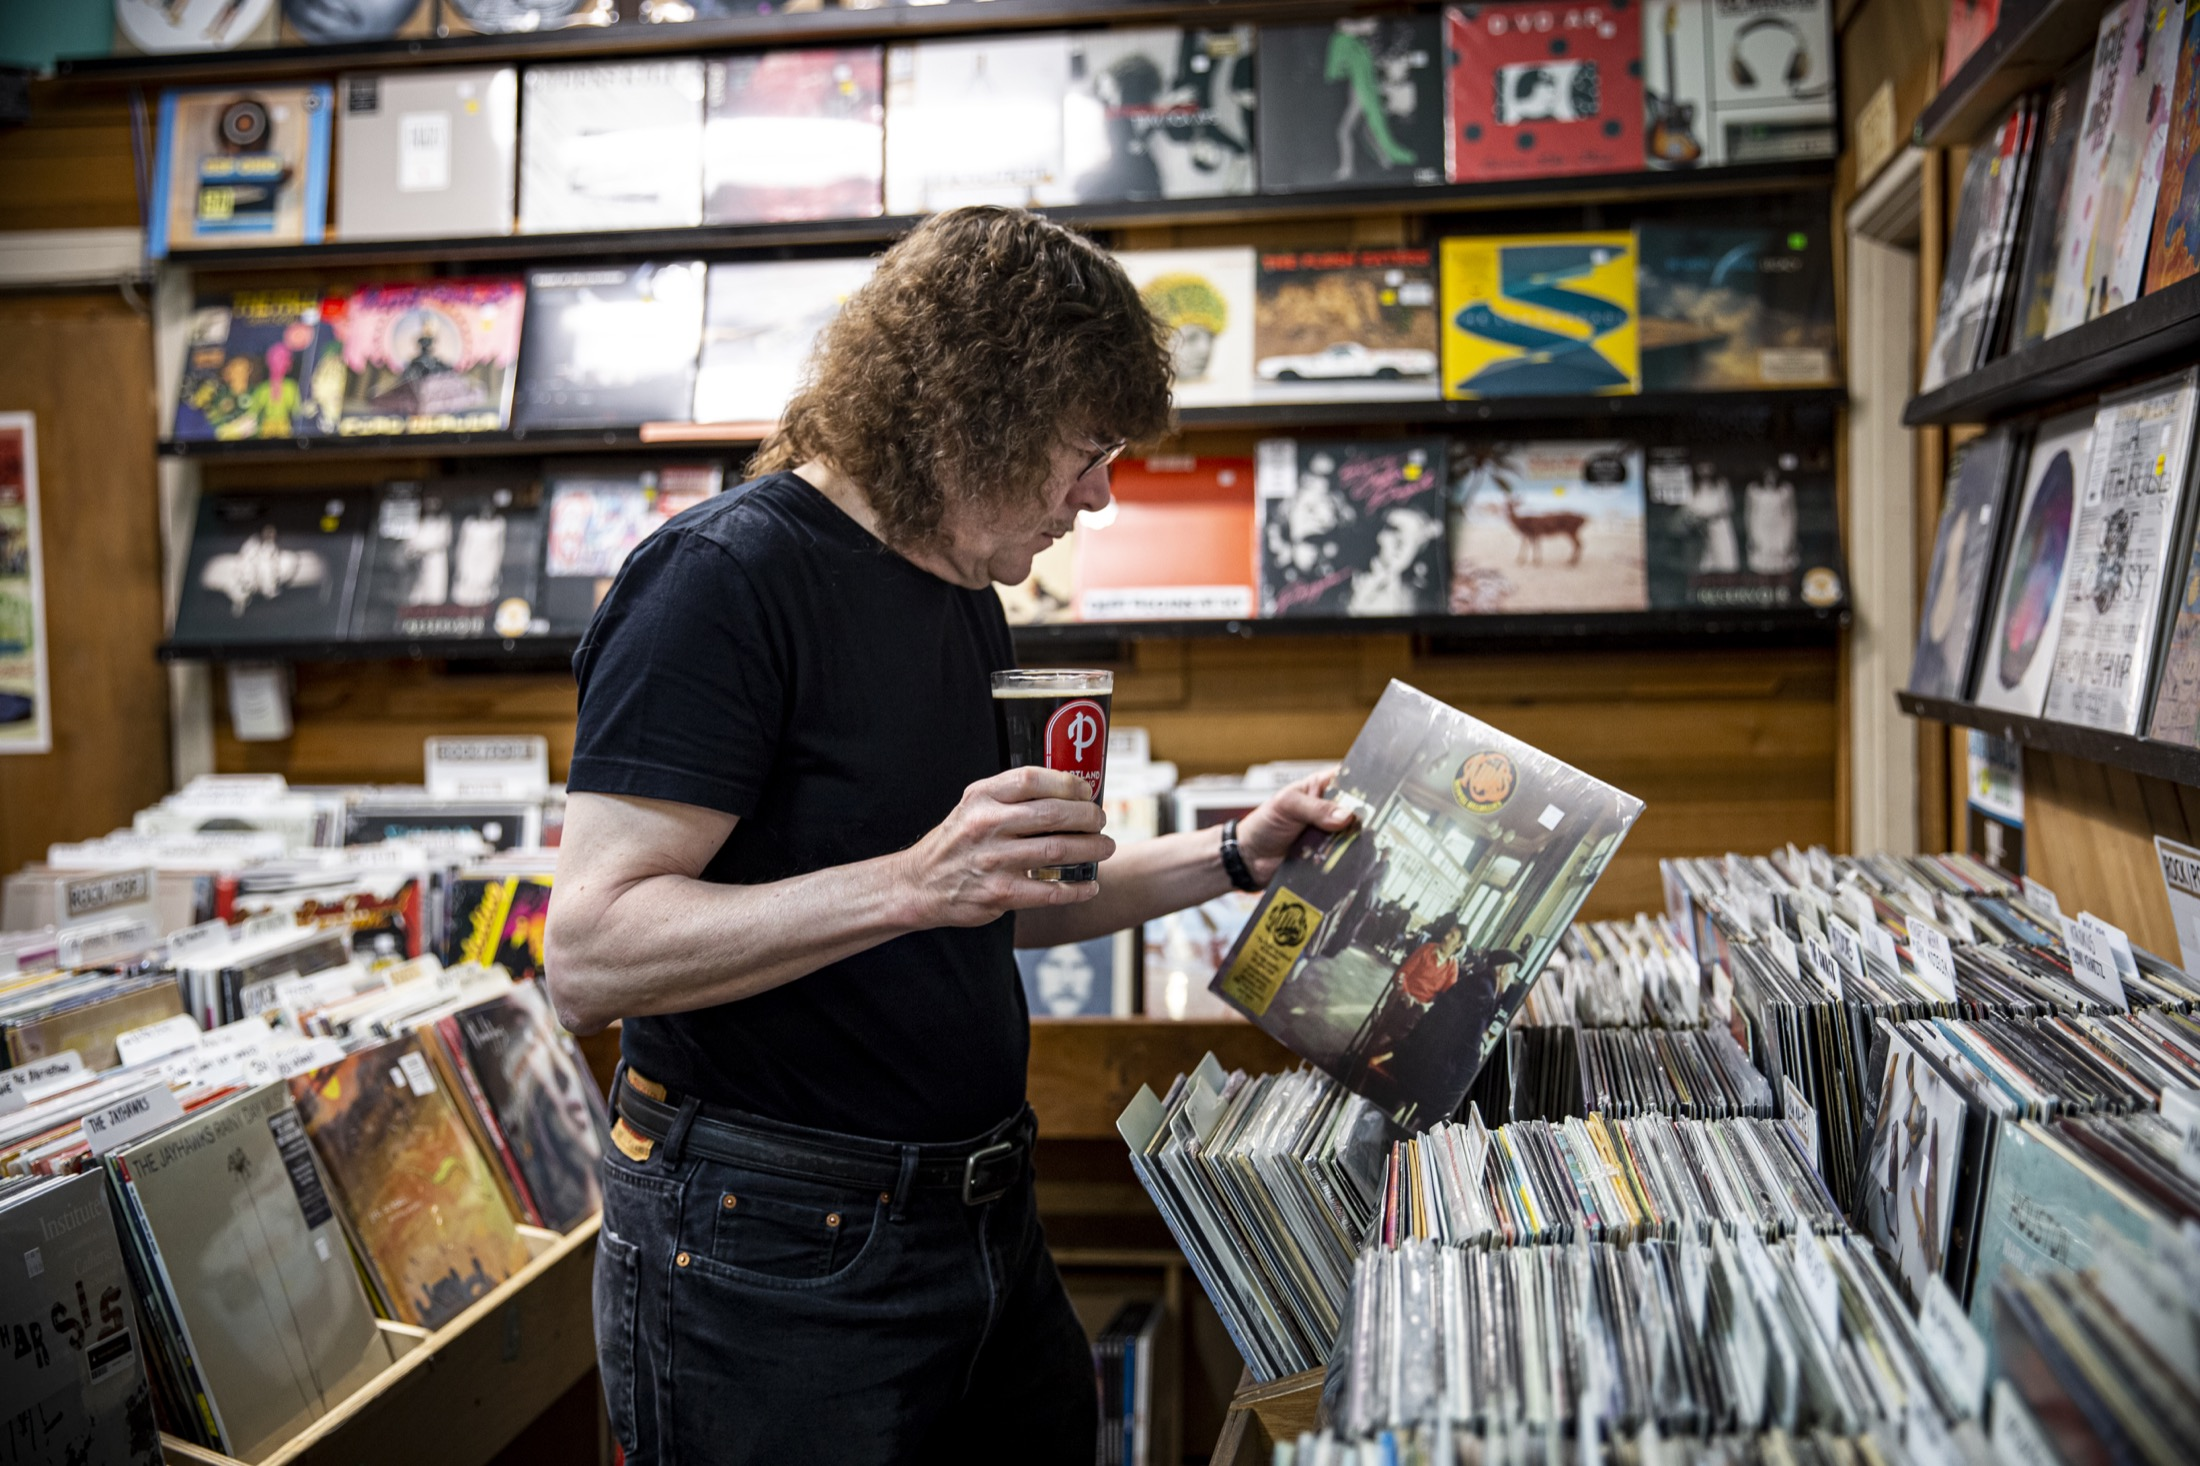 Terry Currier, owner of Music Millennium searching for some vinyl records with a Portland Brewing In The Groove Black Vinyl Lager. (image courtesy of Portland Brewing Co.)